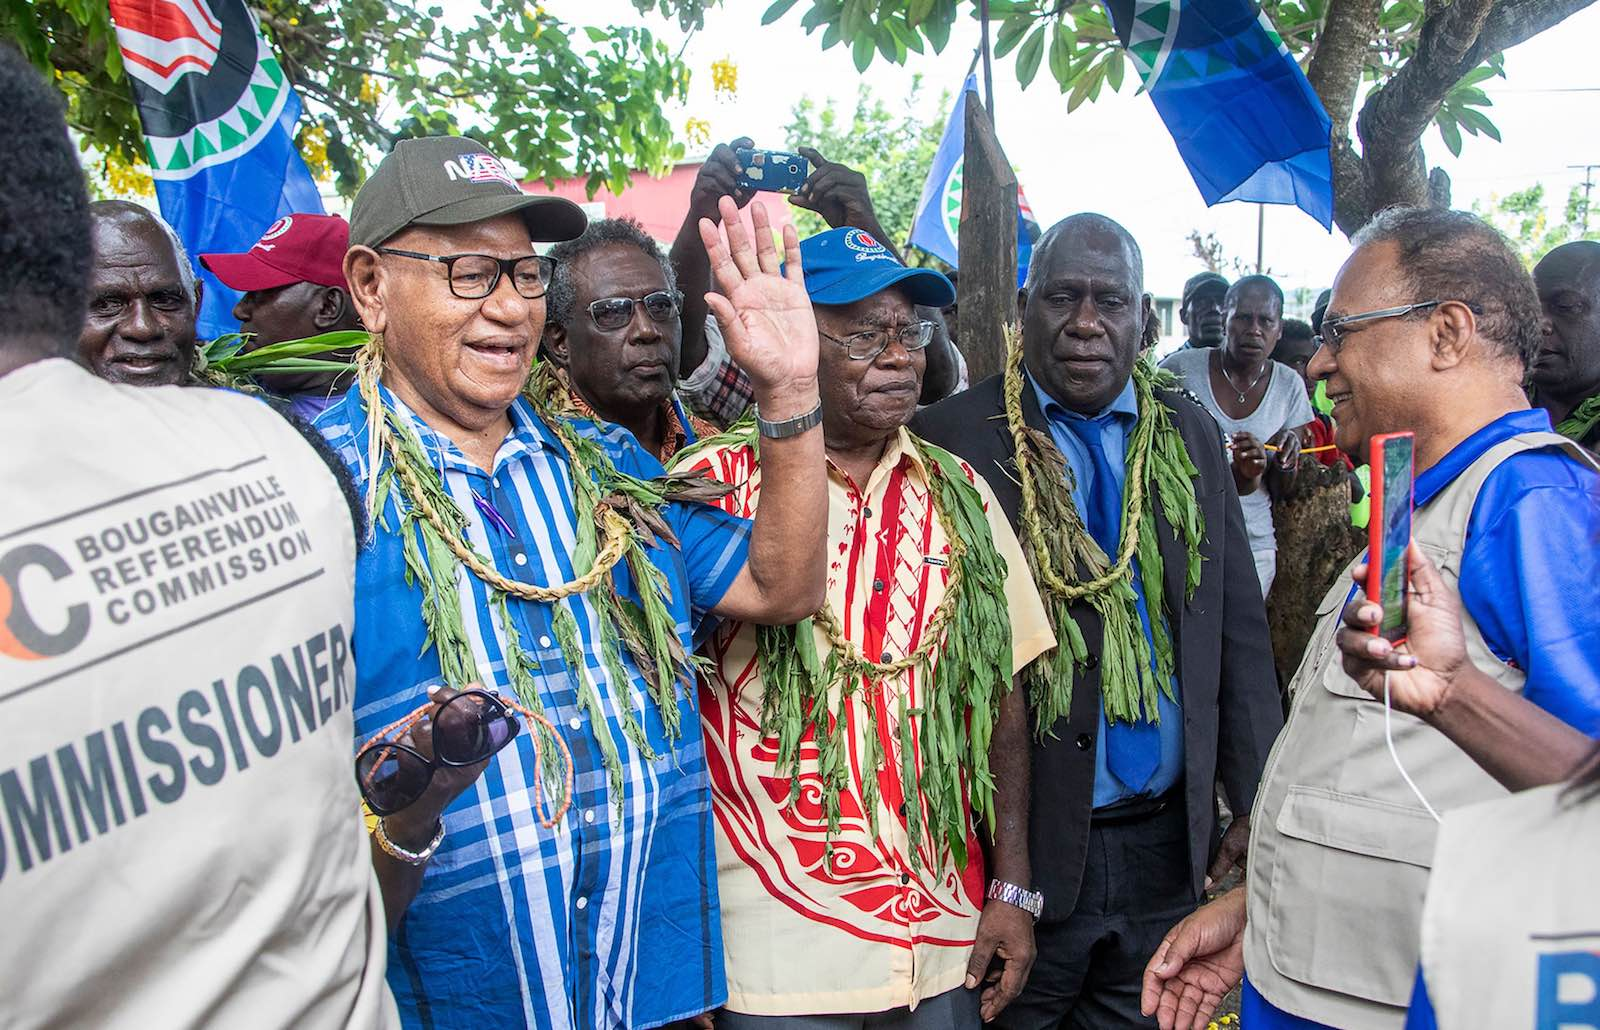 John Momis waves for the camera when about to cast a ballot in Bougainville's independence vote in Buka on 23 November 2019 (Ness Kerton/AFP/Getty Images)